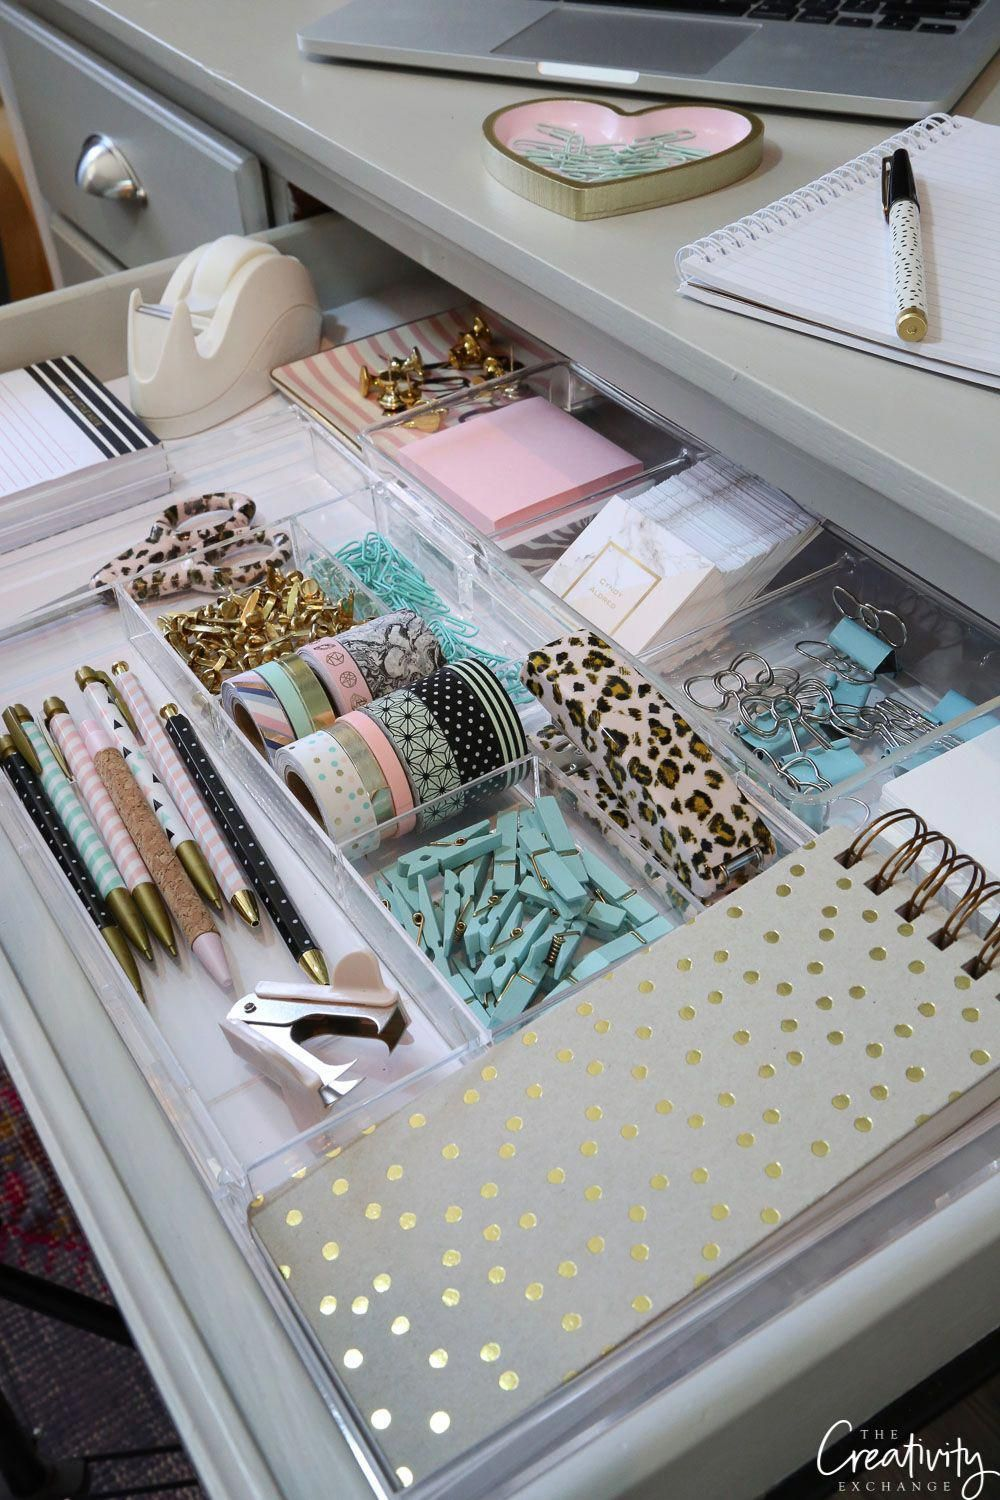 Creative Drawer Organizing Tips And Products Organizationhacks Organized Desk Drawers Bedroom Organisation Room Organization Bedroom